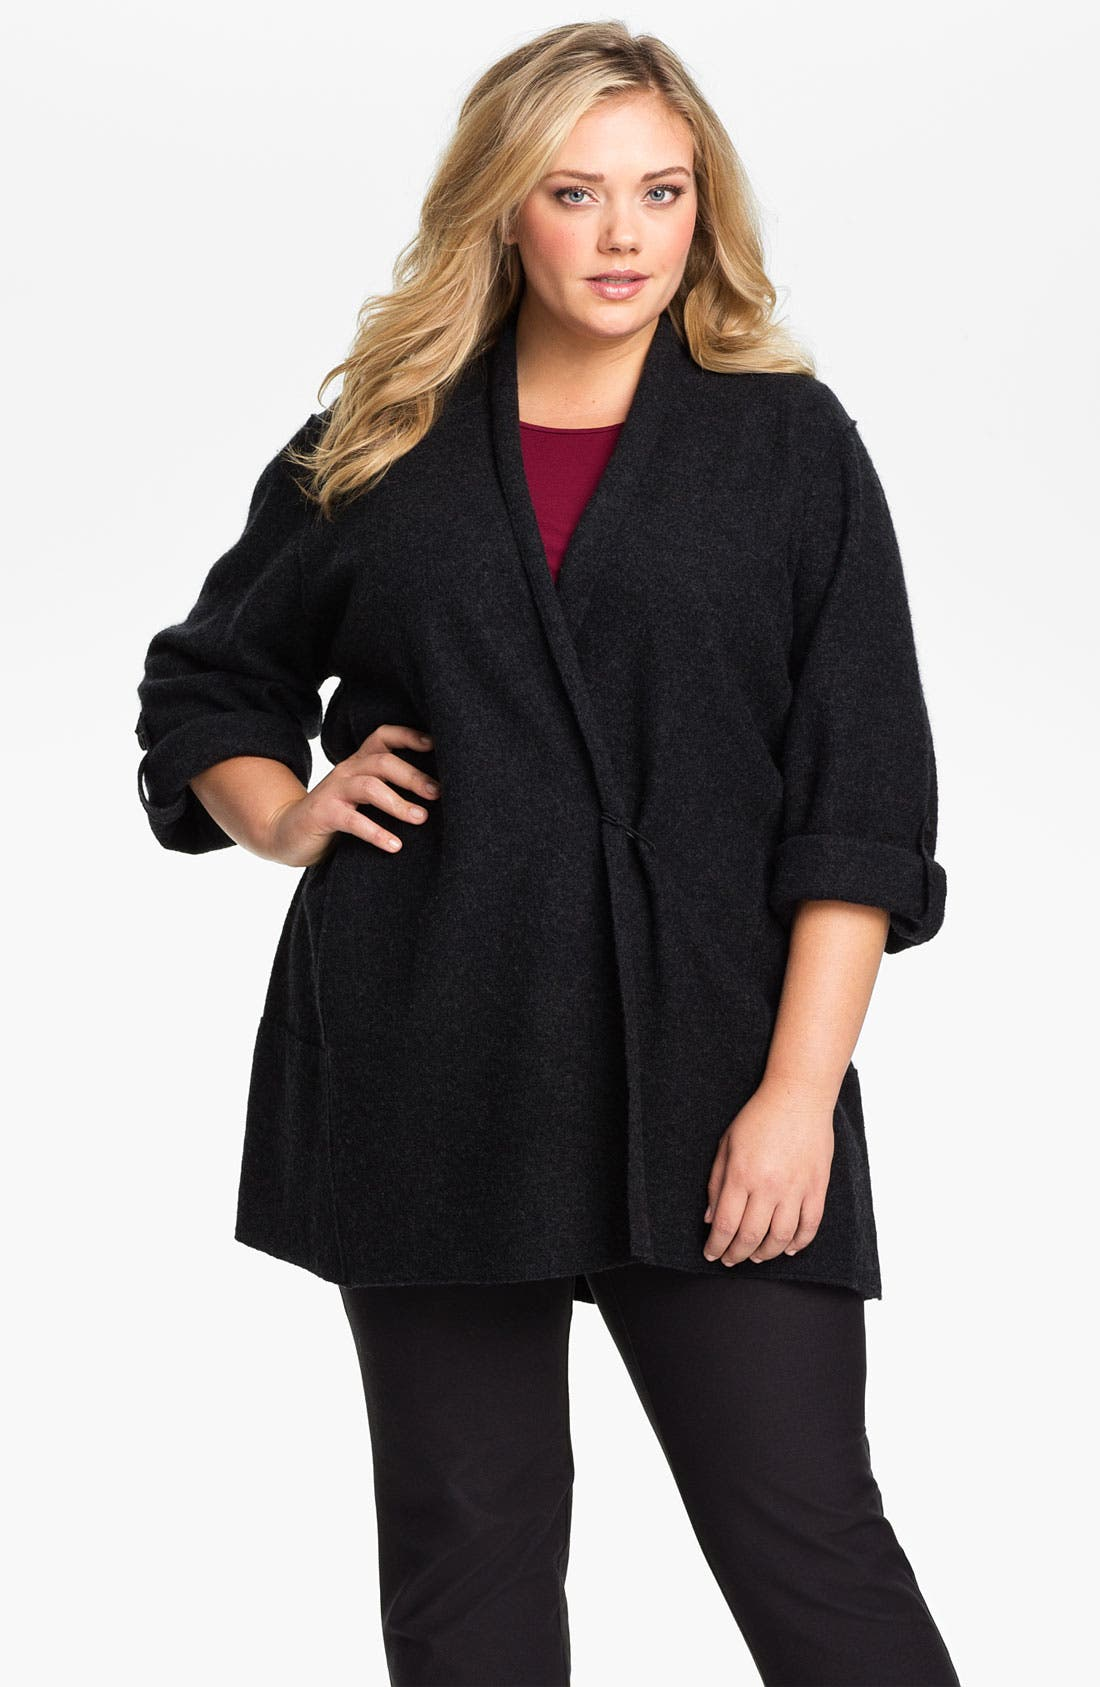 Alternate Image 1 Selected - Eileen Fisher Merino Wool Roll Sleeve Jacket (Plus)